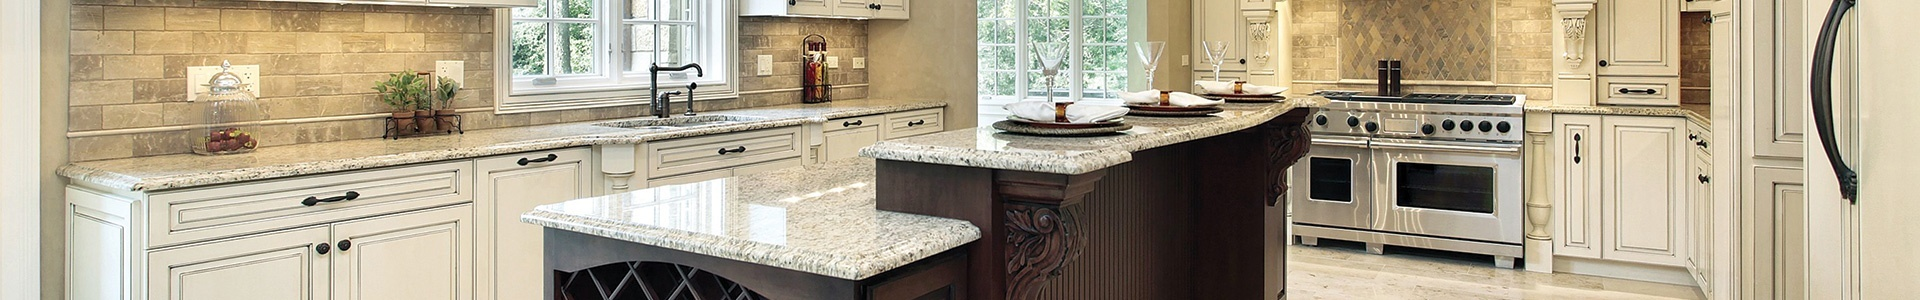 cabinet-refacing-featured-image.jpg